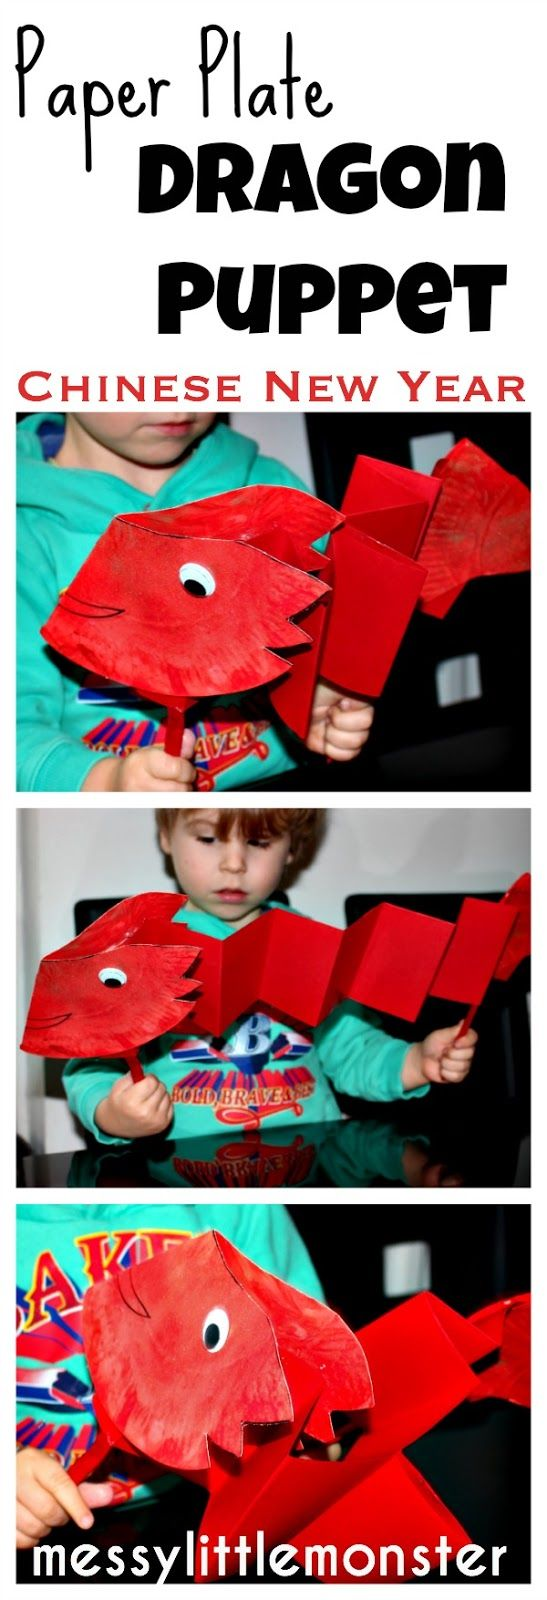 Paper Plate Dragon Puppet